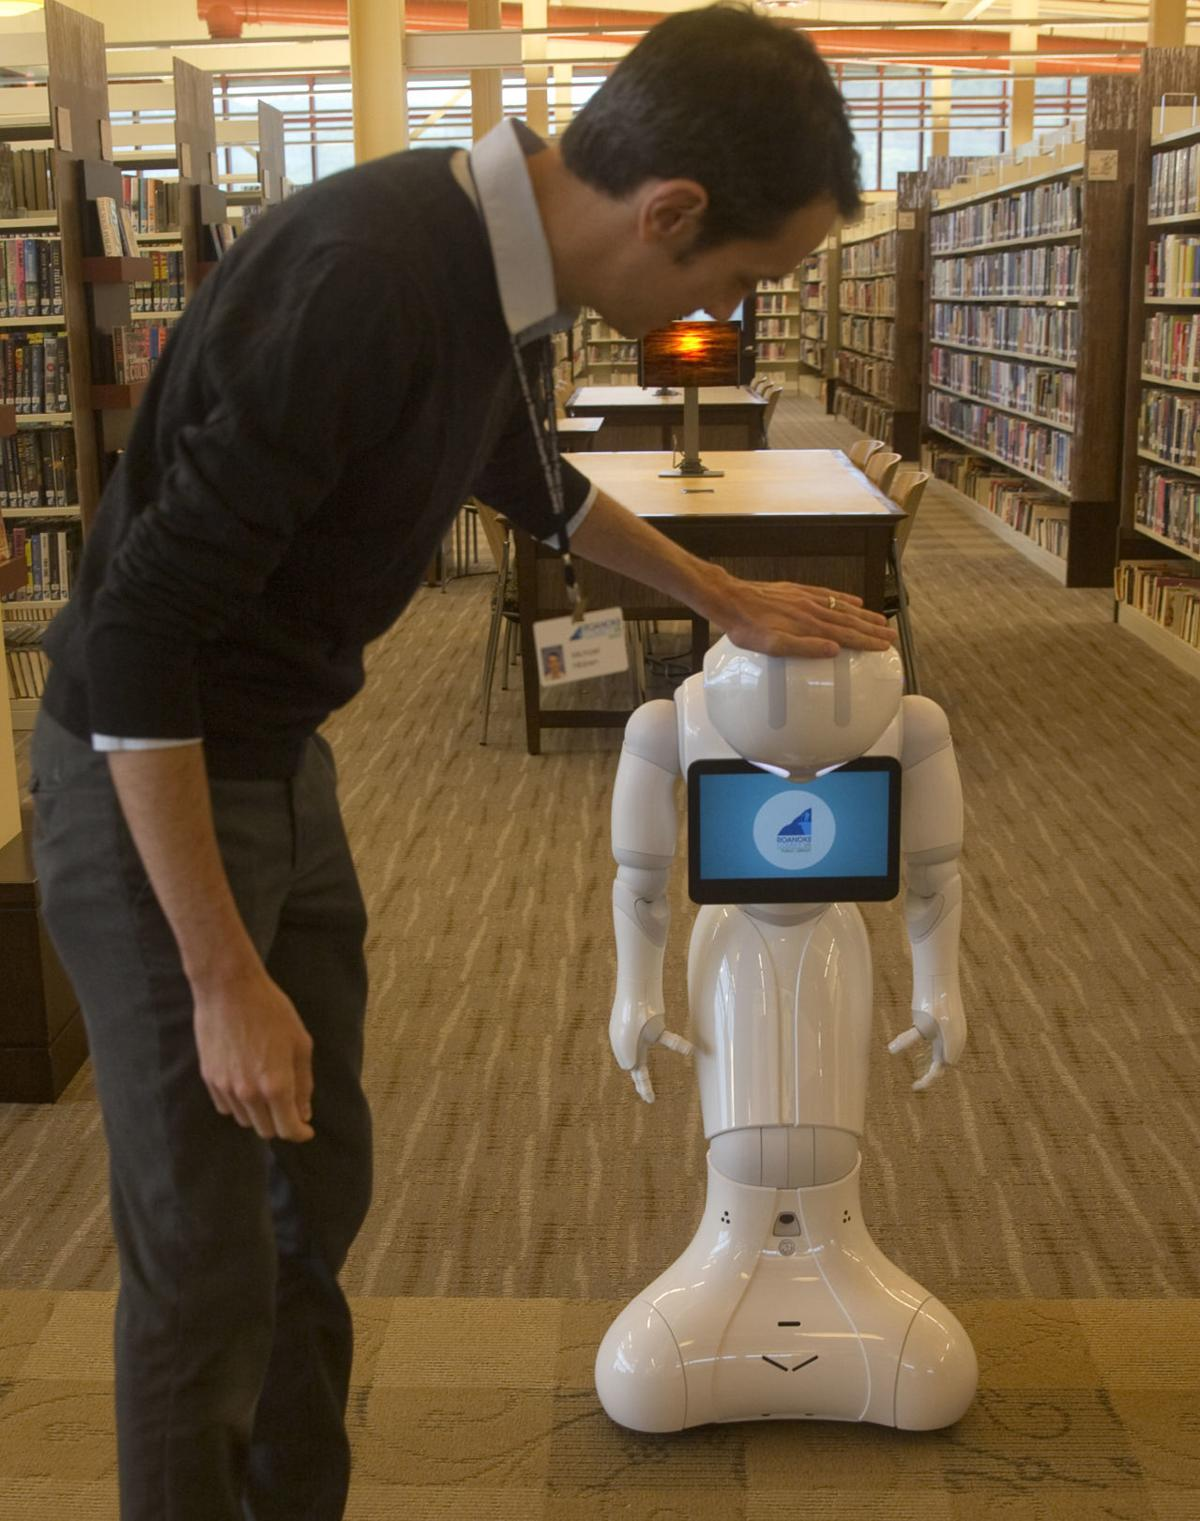 Roanoke County library adds Pepper, a 'community robot